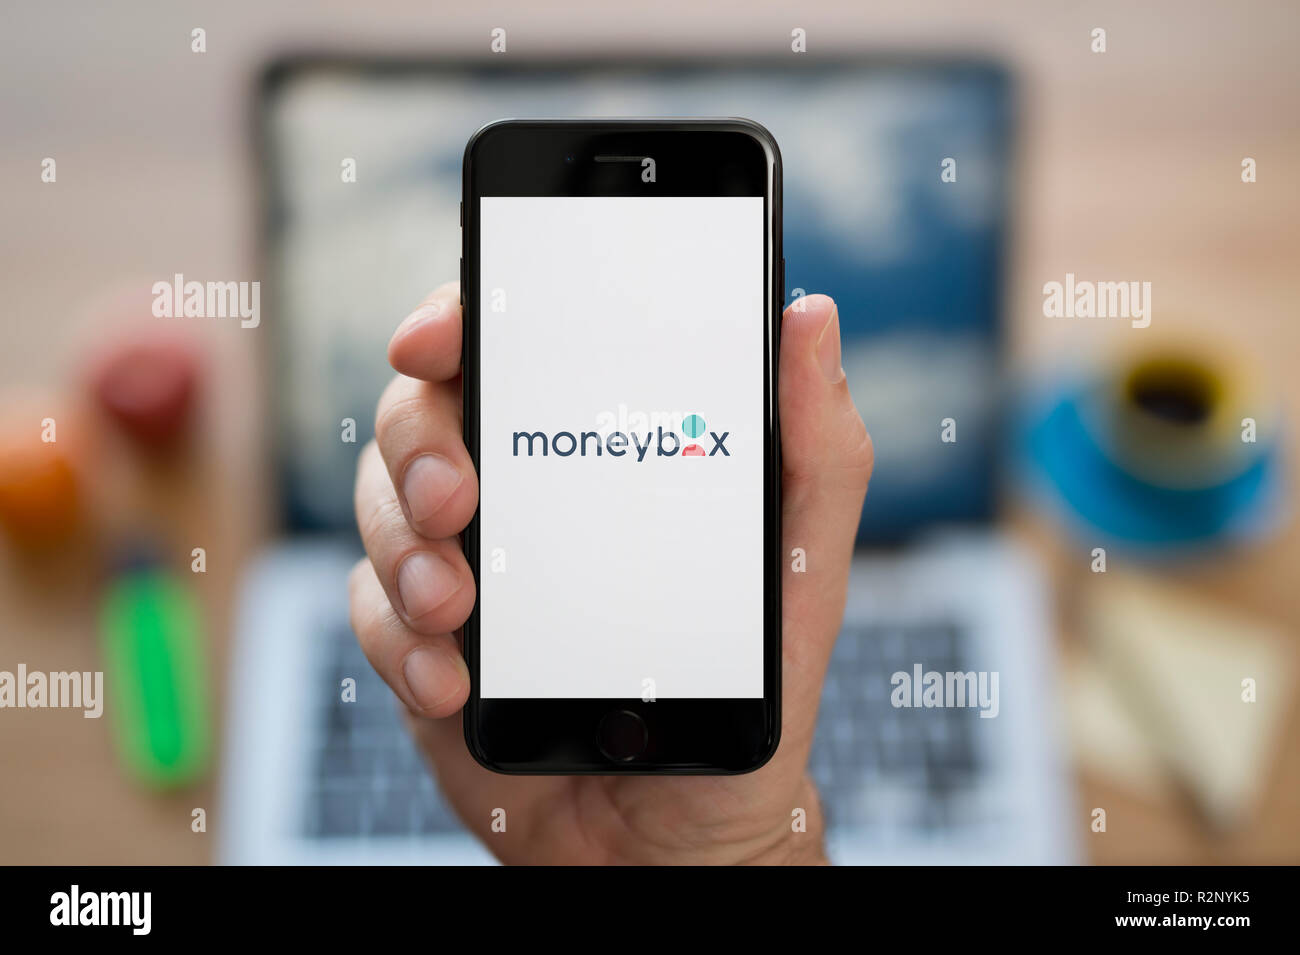 A man looks at his iPhone which displays the Moneybox logo, while sat at his computer desk (Editorial use only). - Stock Image